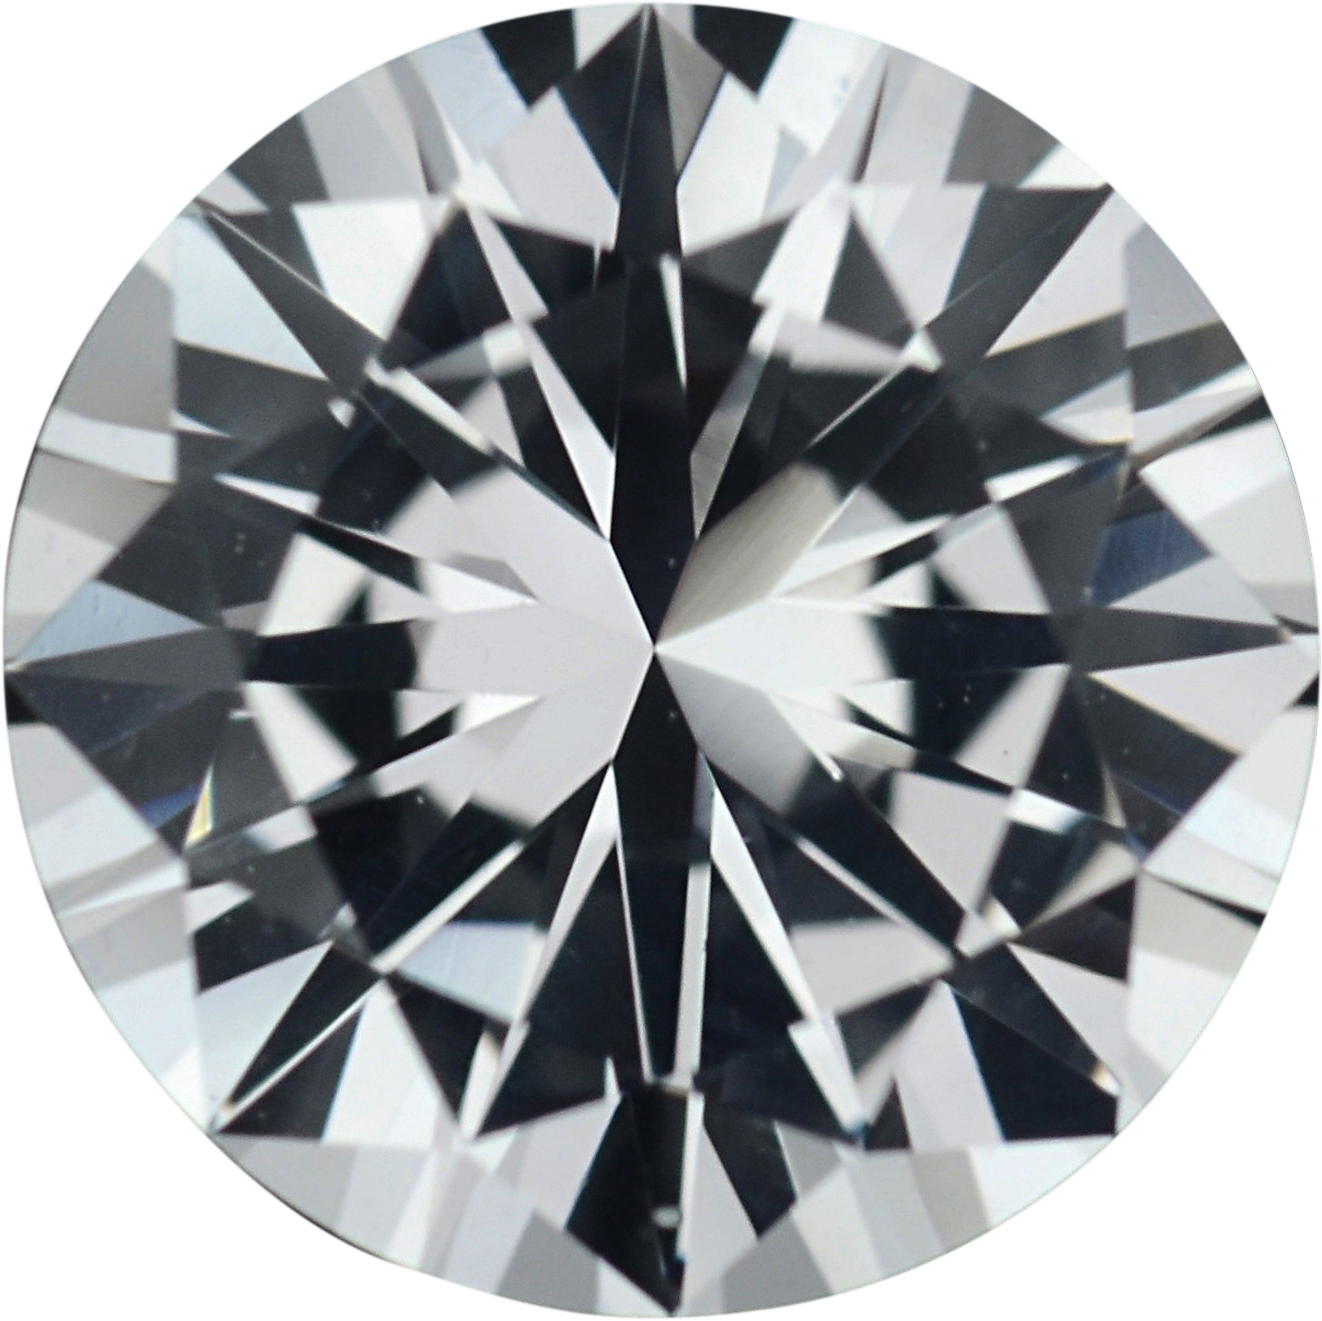 1.29 carats White Loose Sapphire Gemstone in Round Cut, 6.74 mm